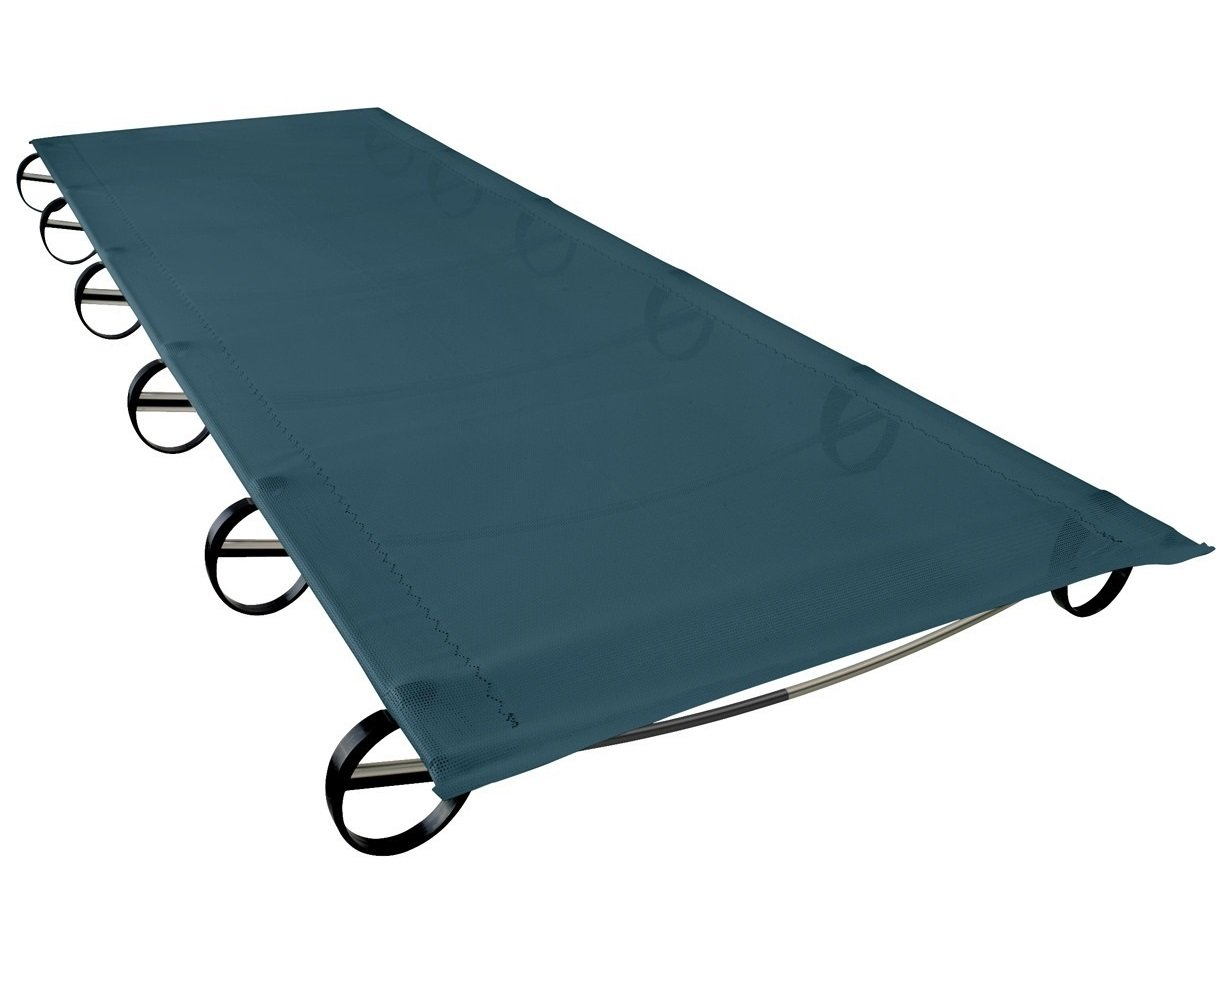 Therm-a-Rest LuxuryLite Mesh Cot Large by Therm-A-Rest (Image #1)